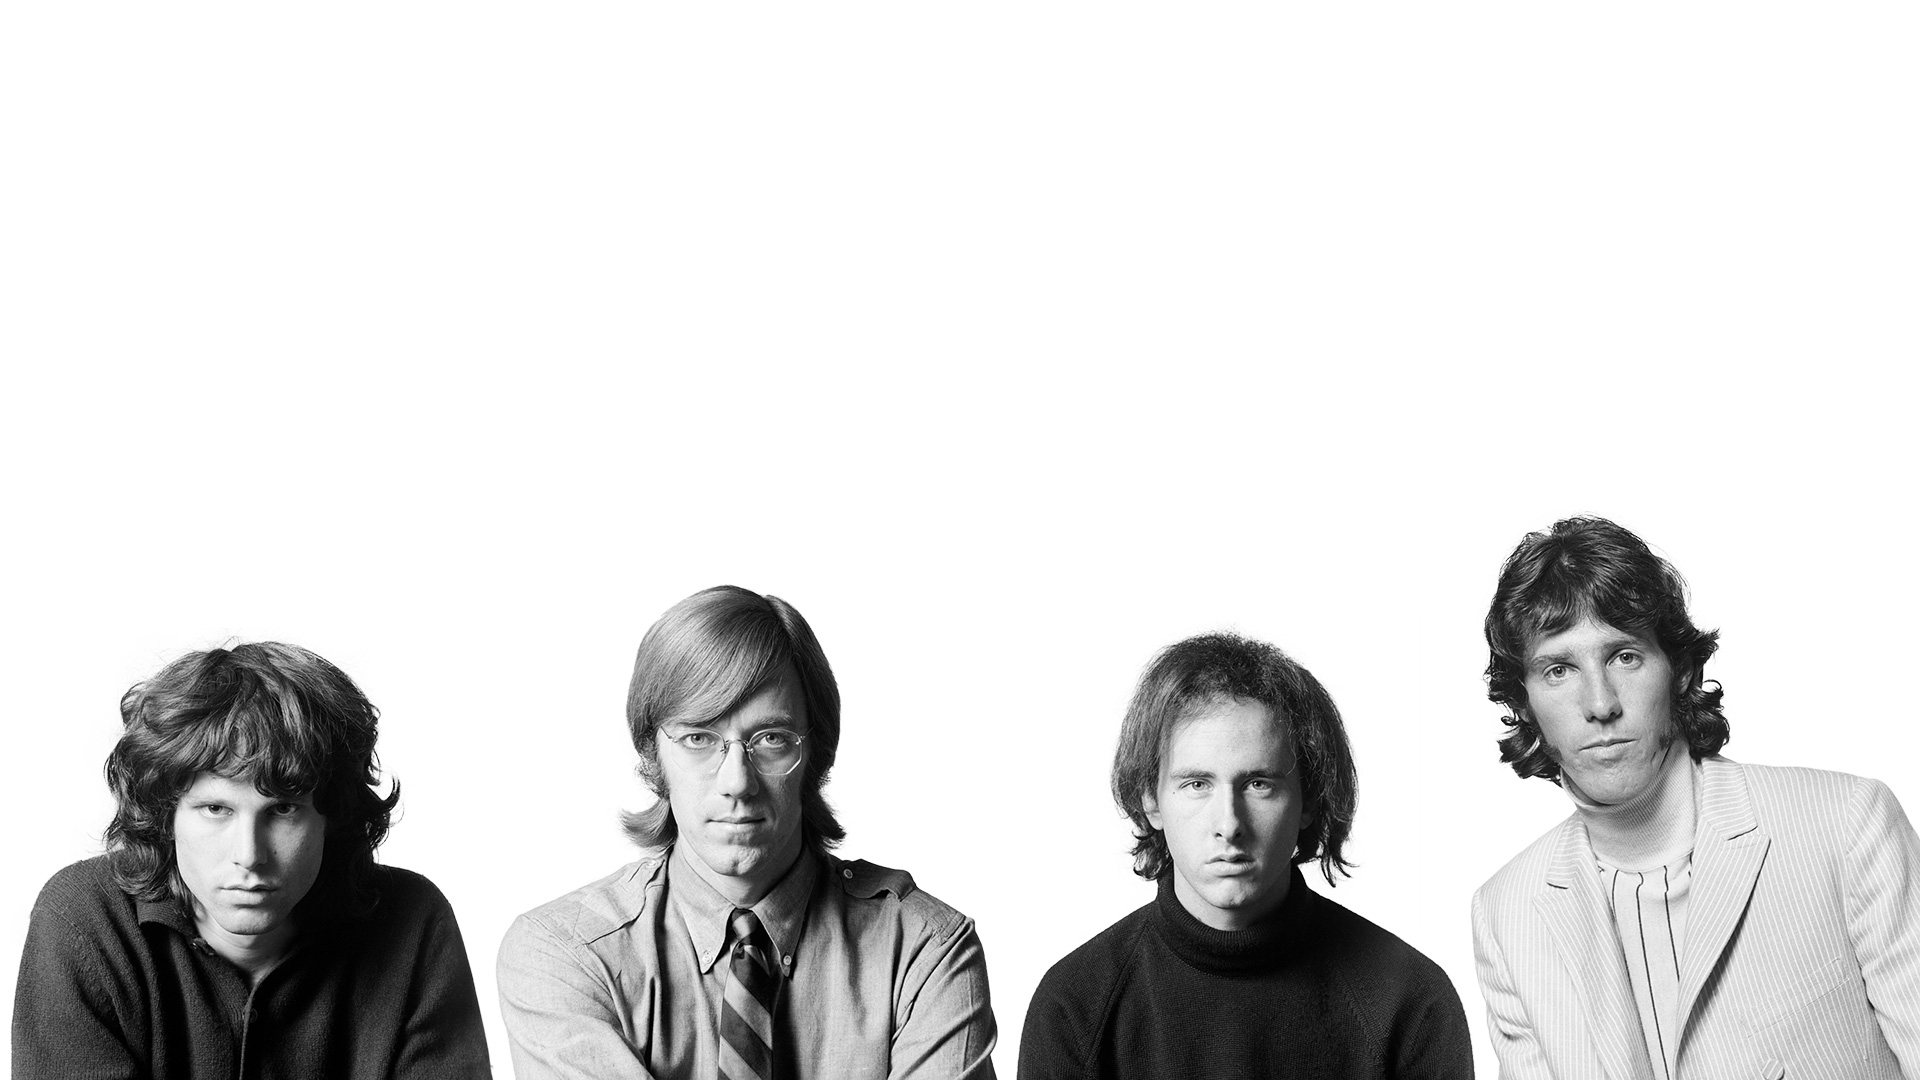 The Doors Hd Wallpaper Background Image 1920x1080 Id 783817